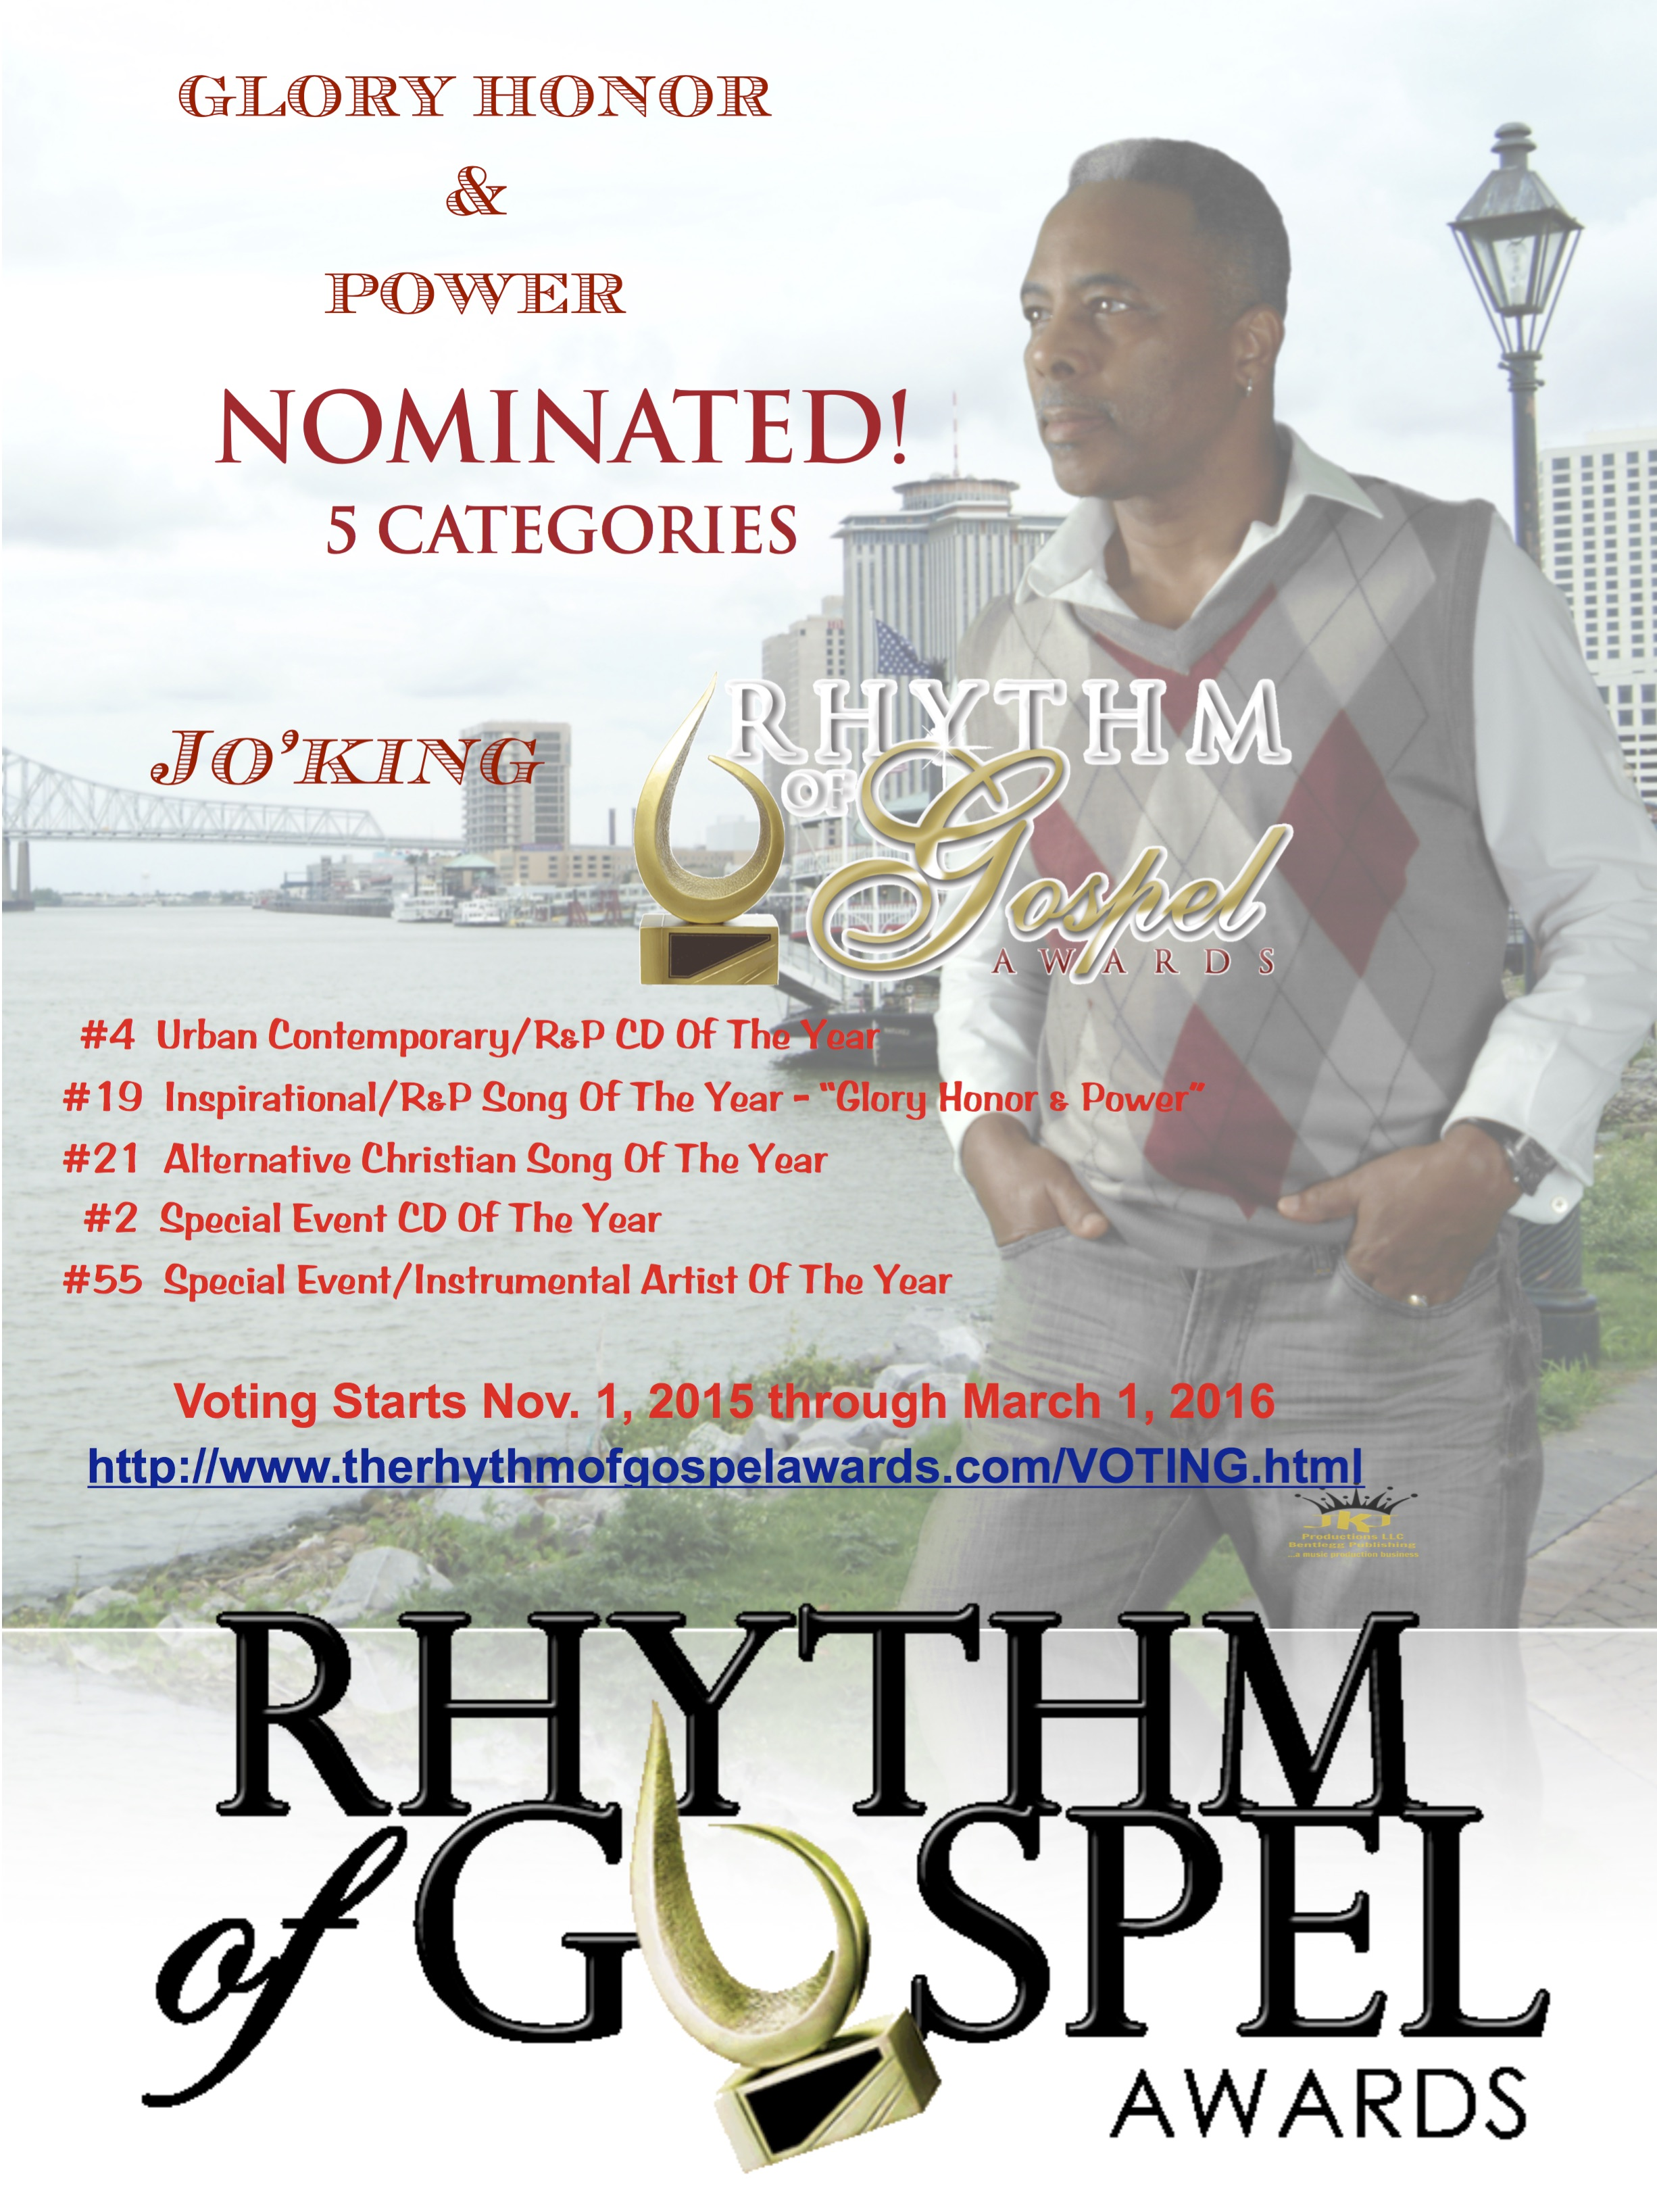 Rhythm Of Gospel Awards-Voting